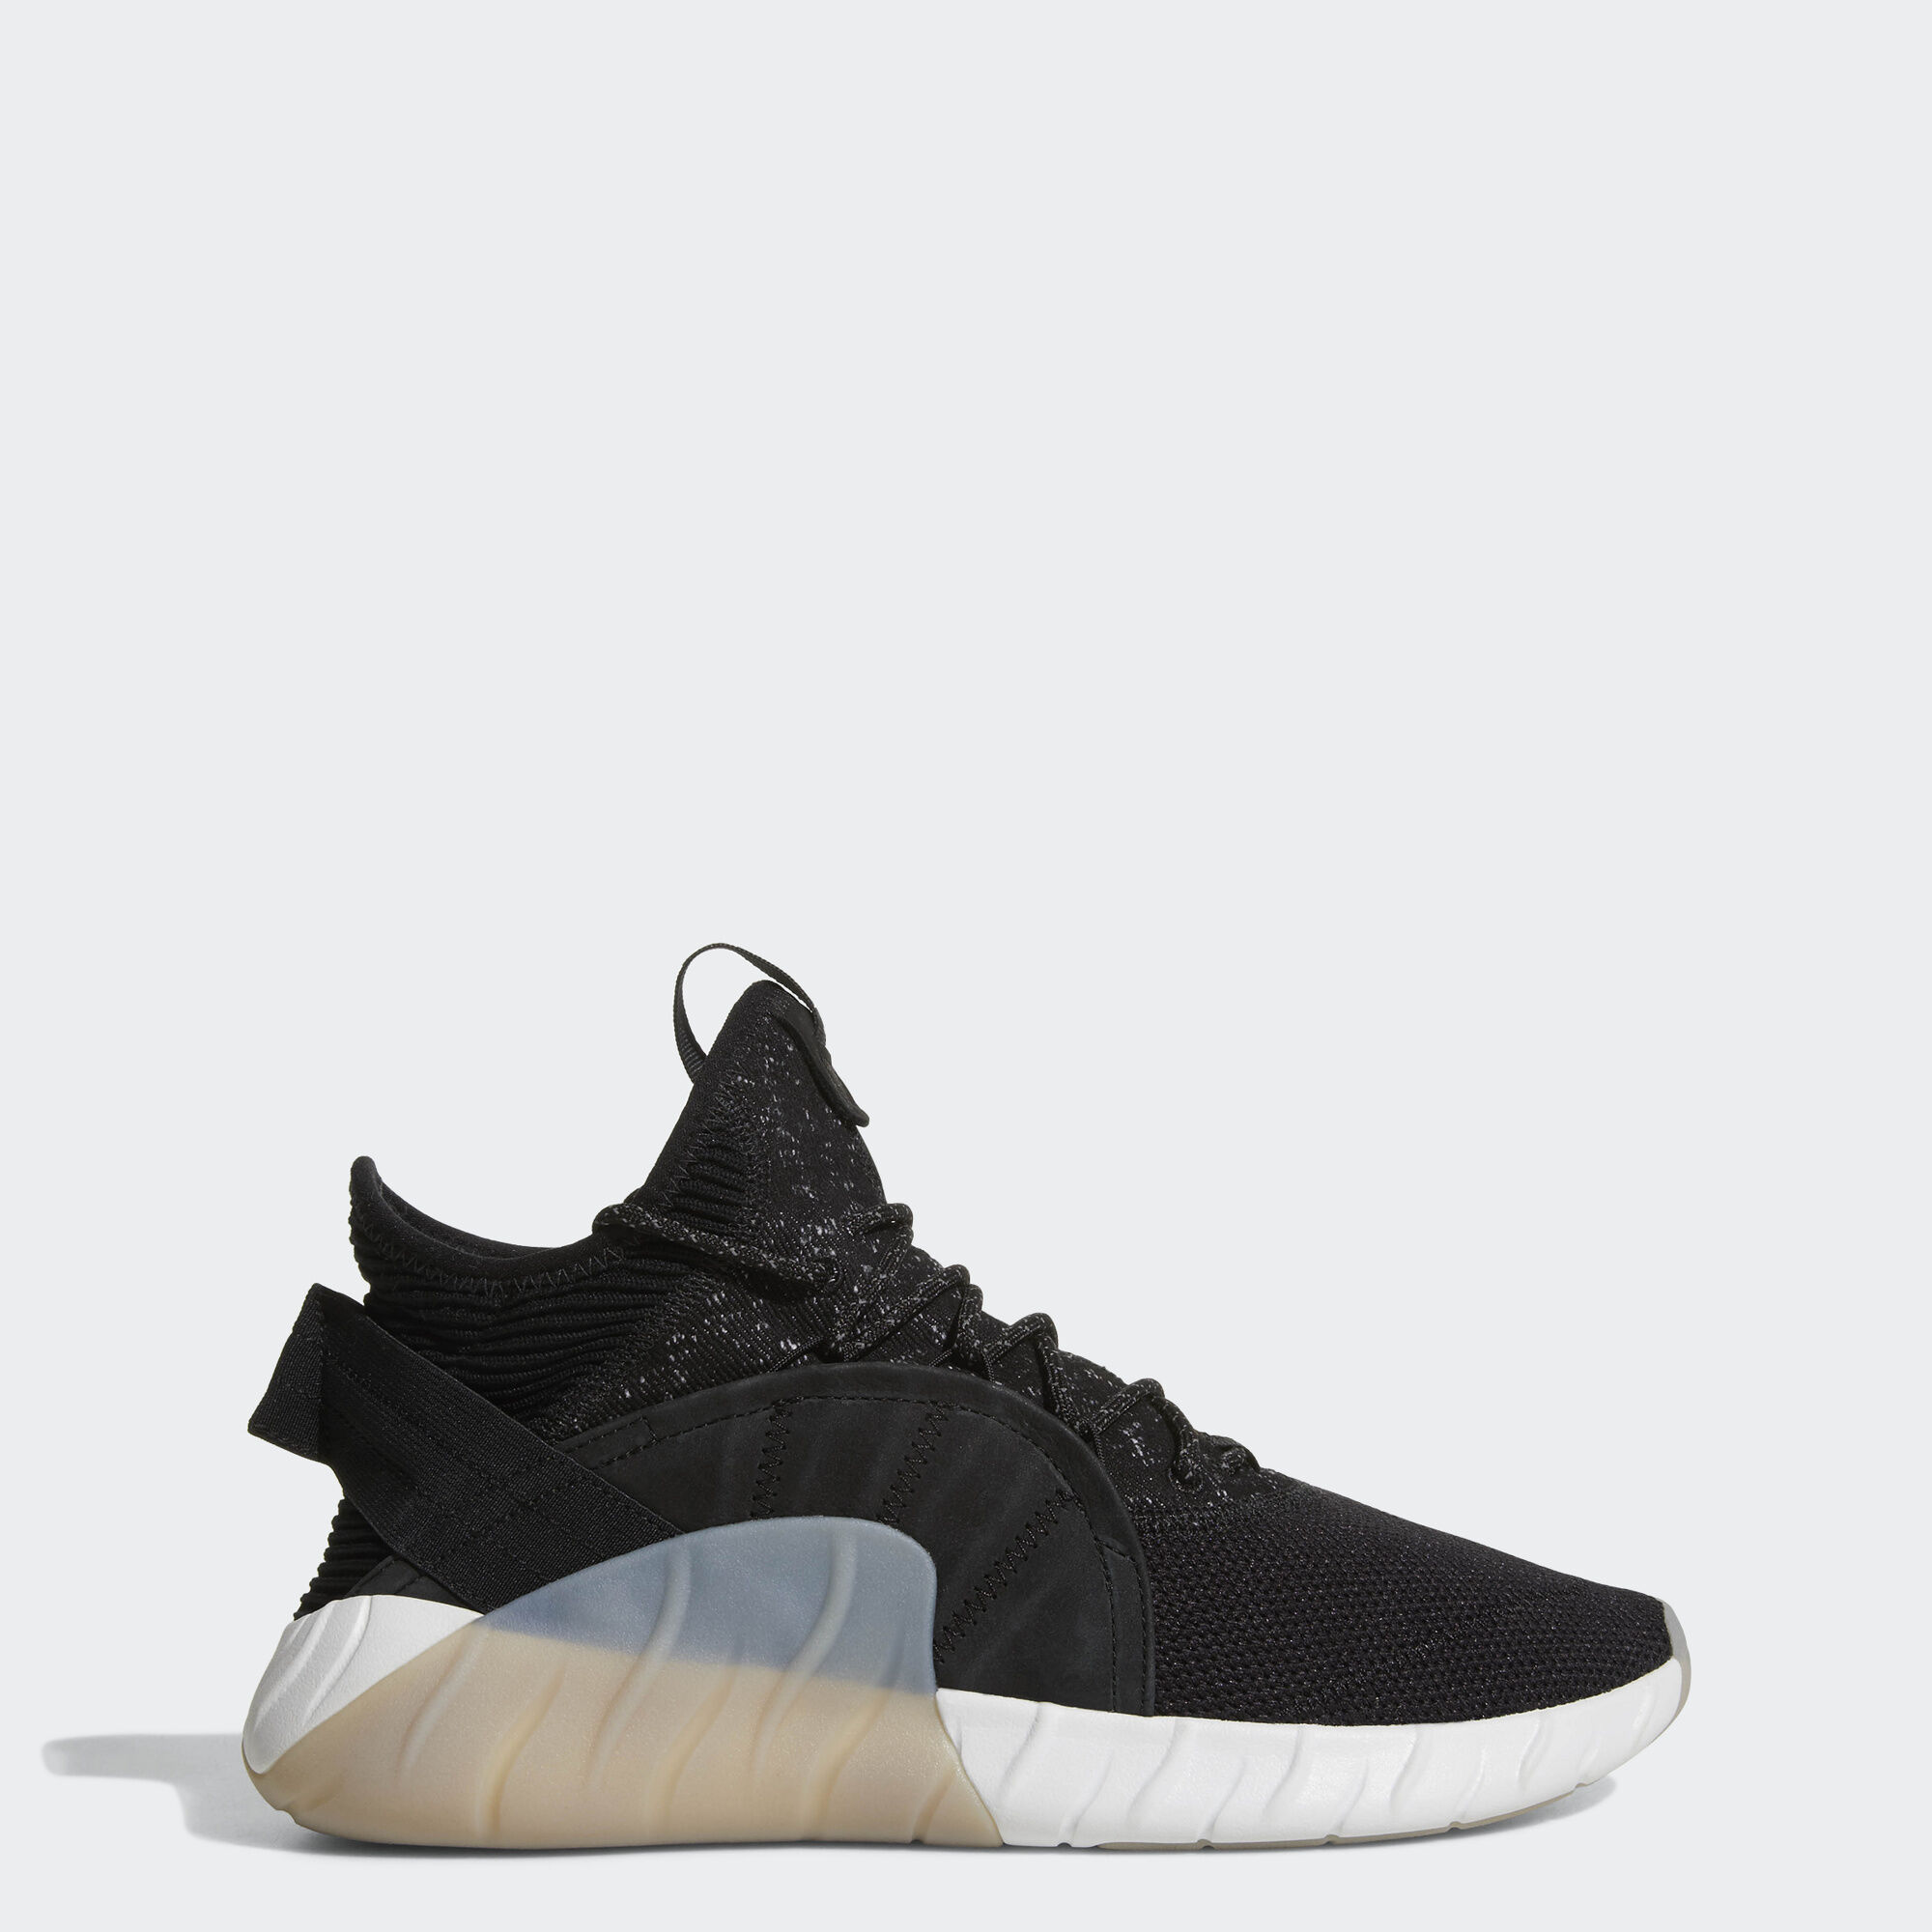 afa90d78 ... adidas - Tubular Rise Shoes Core Black / Chalk White / Crystal White  BY3554 adidas - ULTRABOOST Shoes Running White Ftw ...